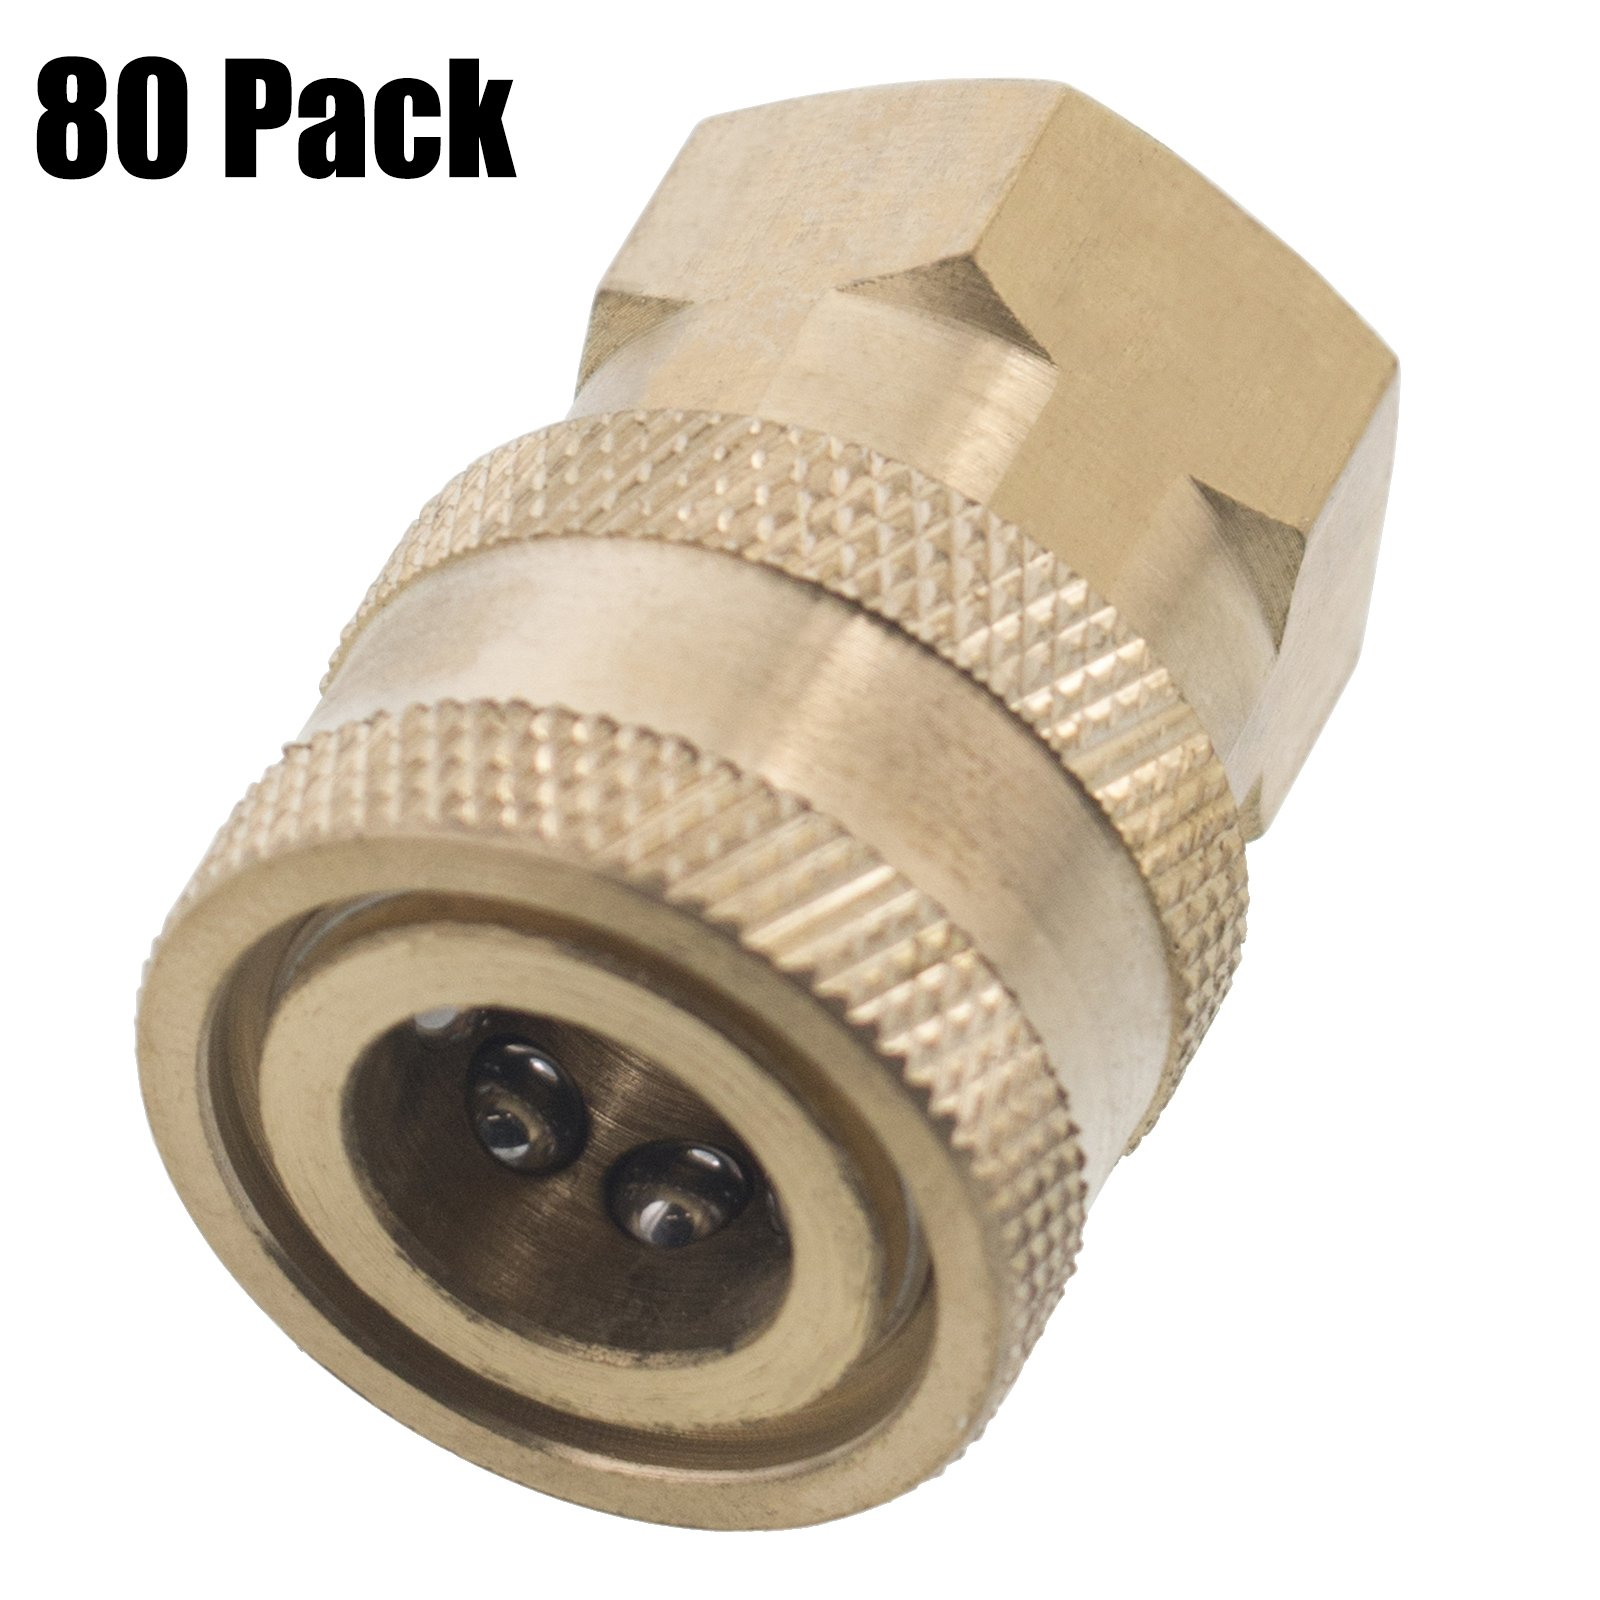 Erie Tools 80 1/4in. FPT Female Brass Socket Quick Connect Coupler 4000 PSI 10 GPM for Pressure Washer Nozzle Gun Hose Wand